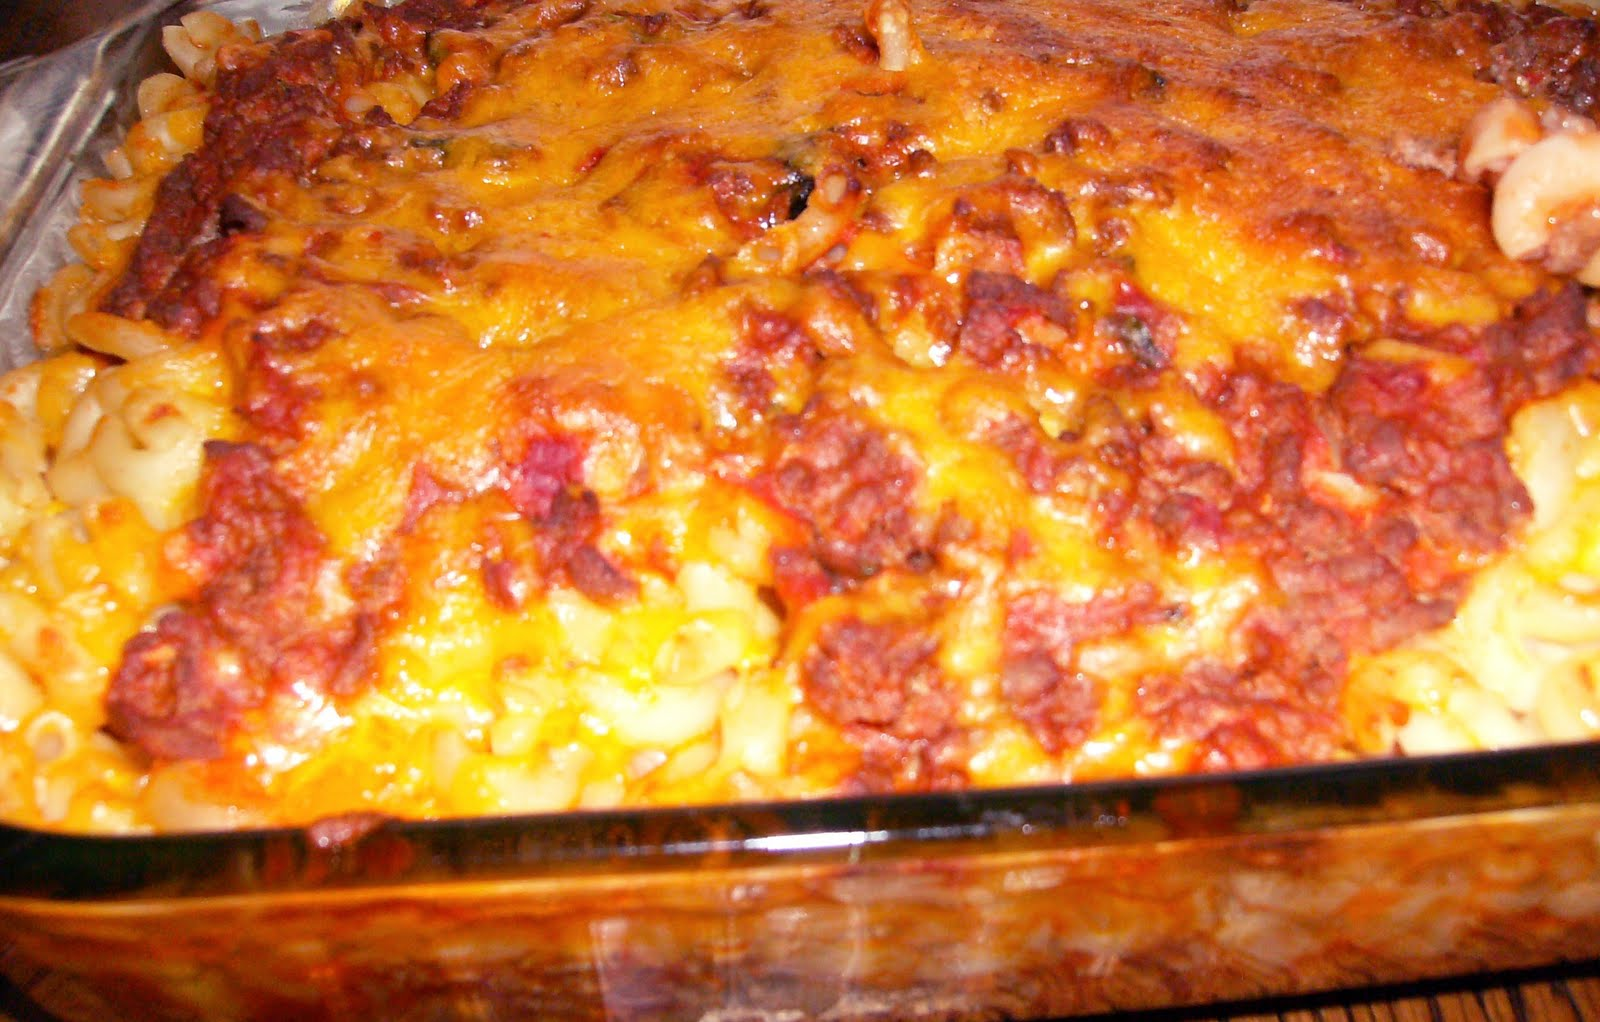 recipes johnny marzetti v johnny marzetti casserole johnny marzetti v ...